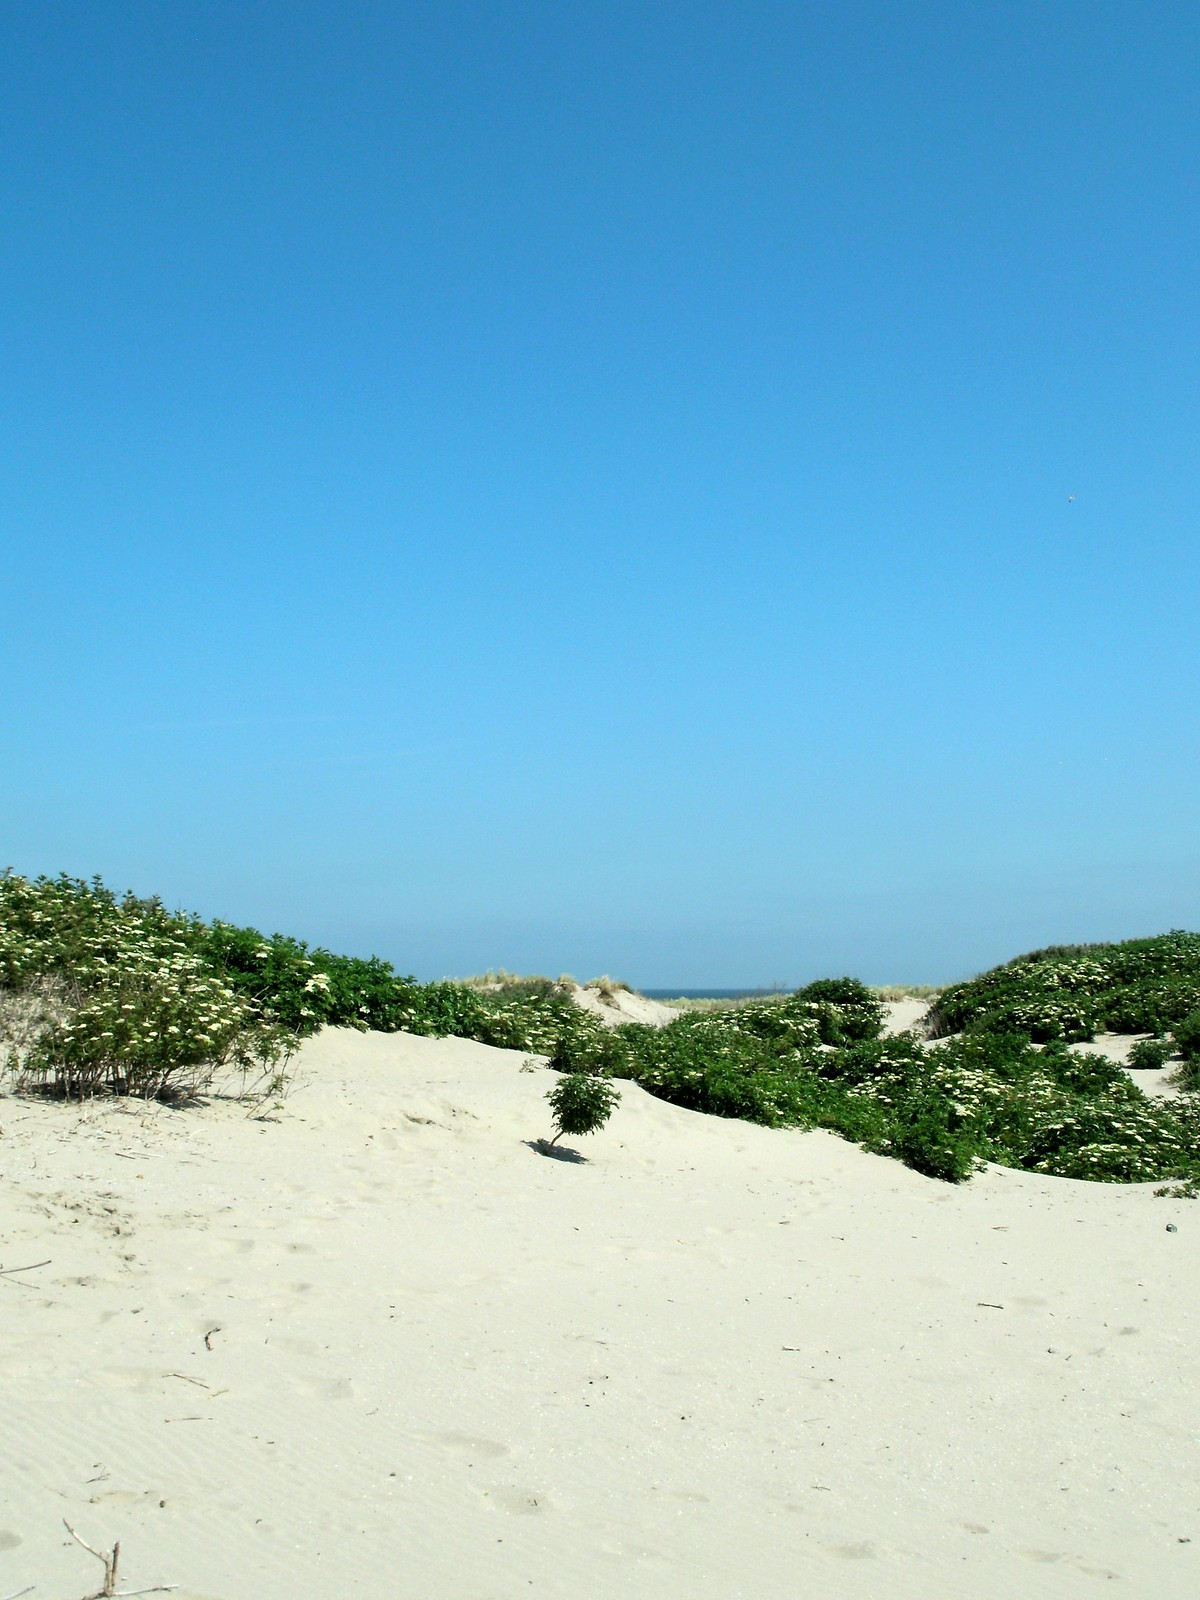 A view of the green vegetation and pale yellow sand at Hoek van Holland.